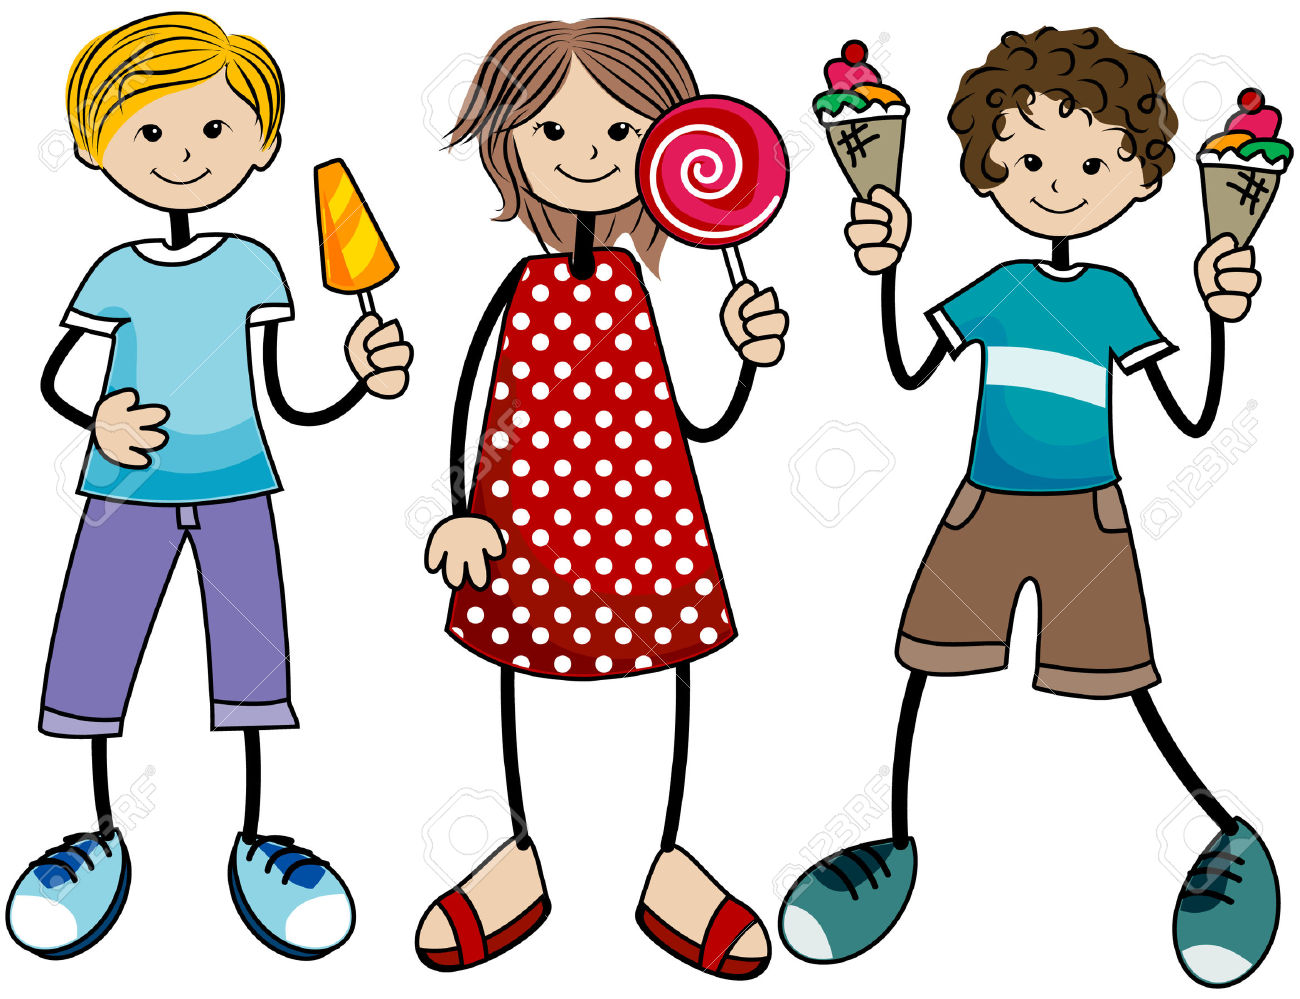 Candy clipart group Cliparts for Cliparts kids Candy